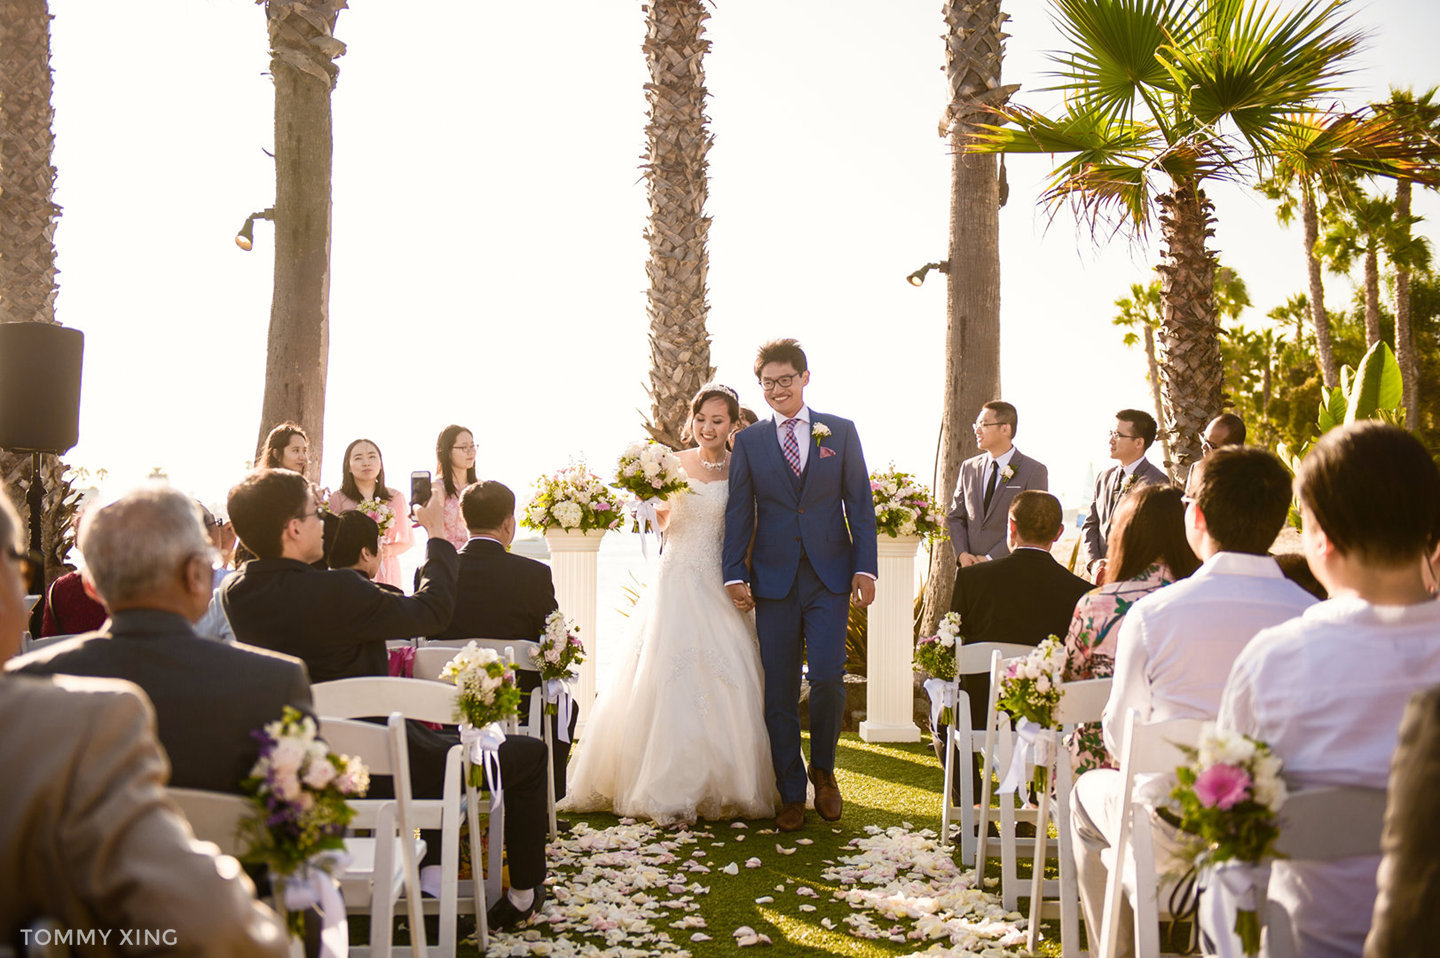 Paradise Point Resort Wedding Xiaolu & Bin San Diego 圣地亚哥婚礼摄影跟拍 Tommy Xing Photography 洛杉矶婚礼婚纱照摄影师 175.jpg